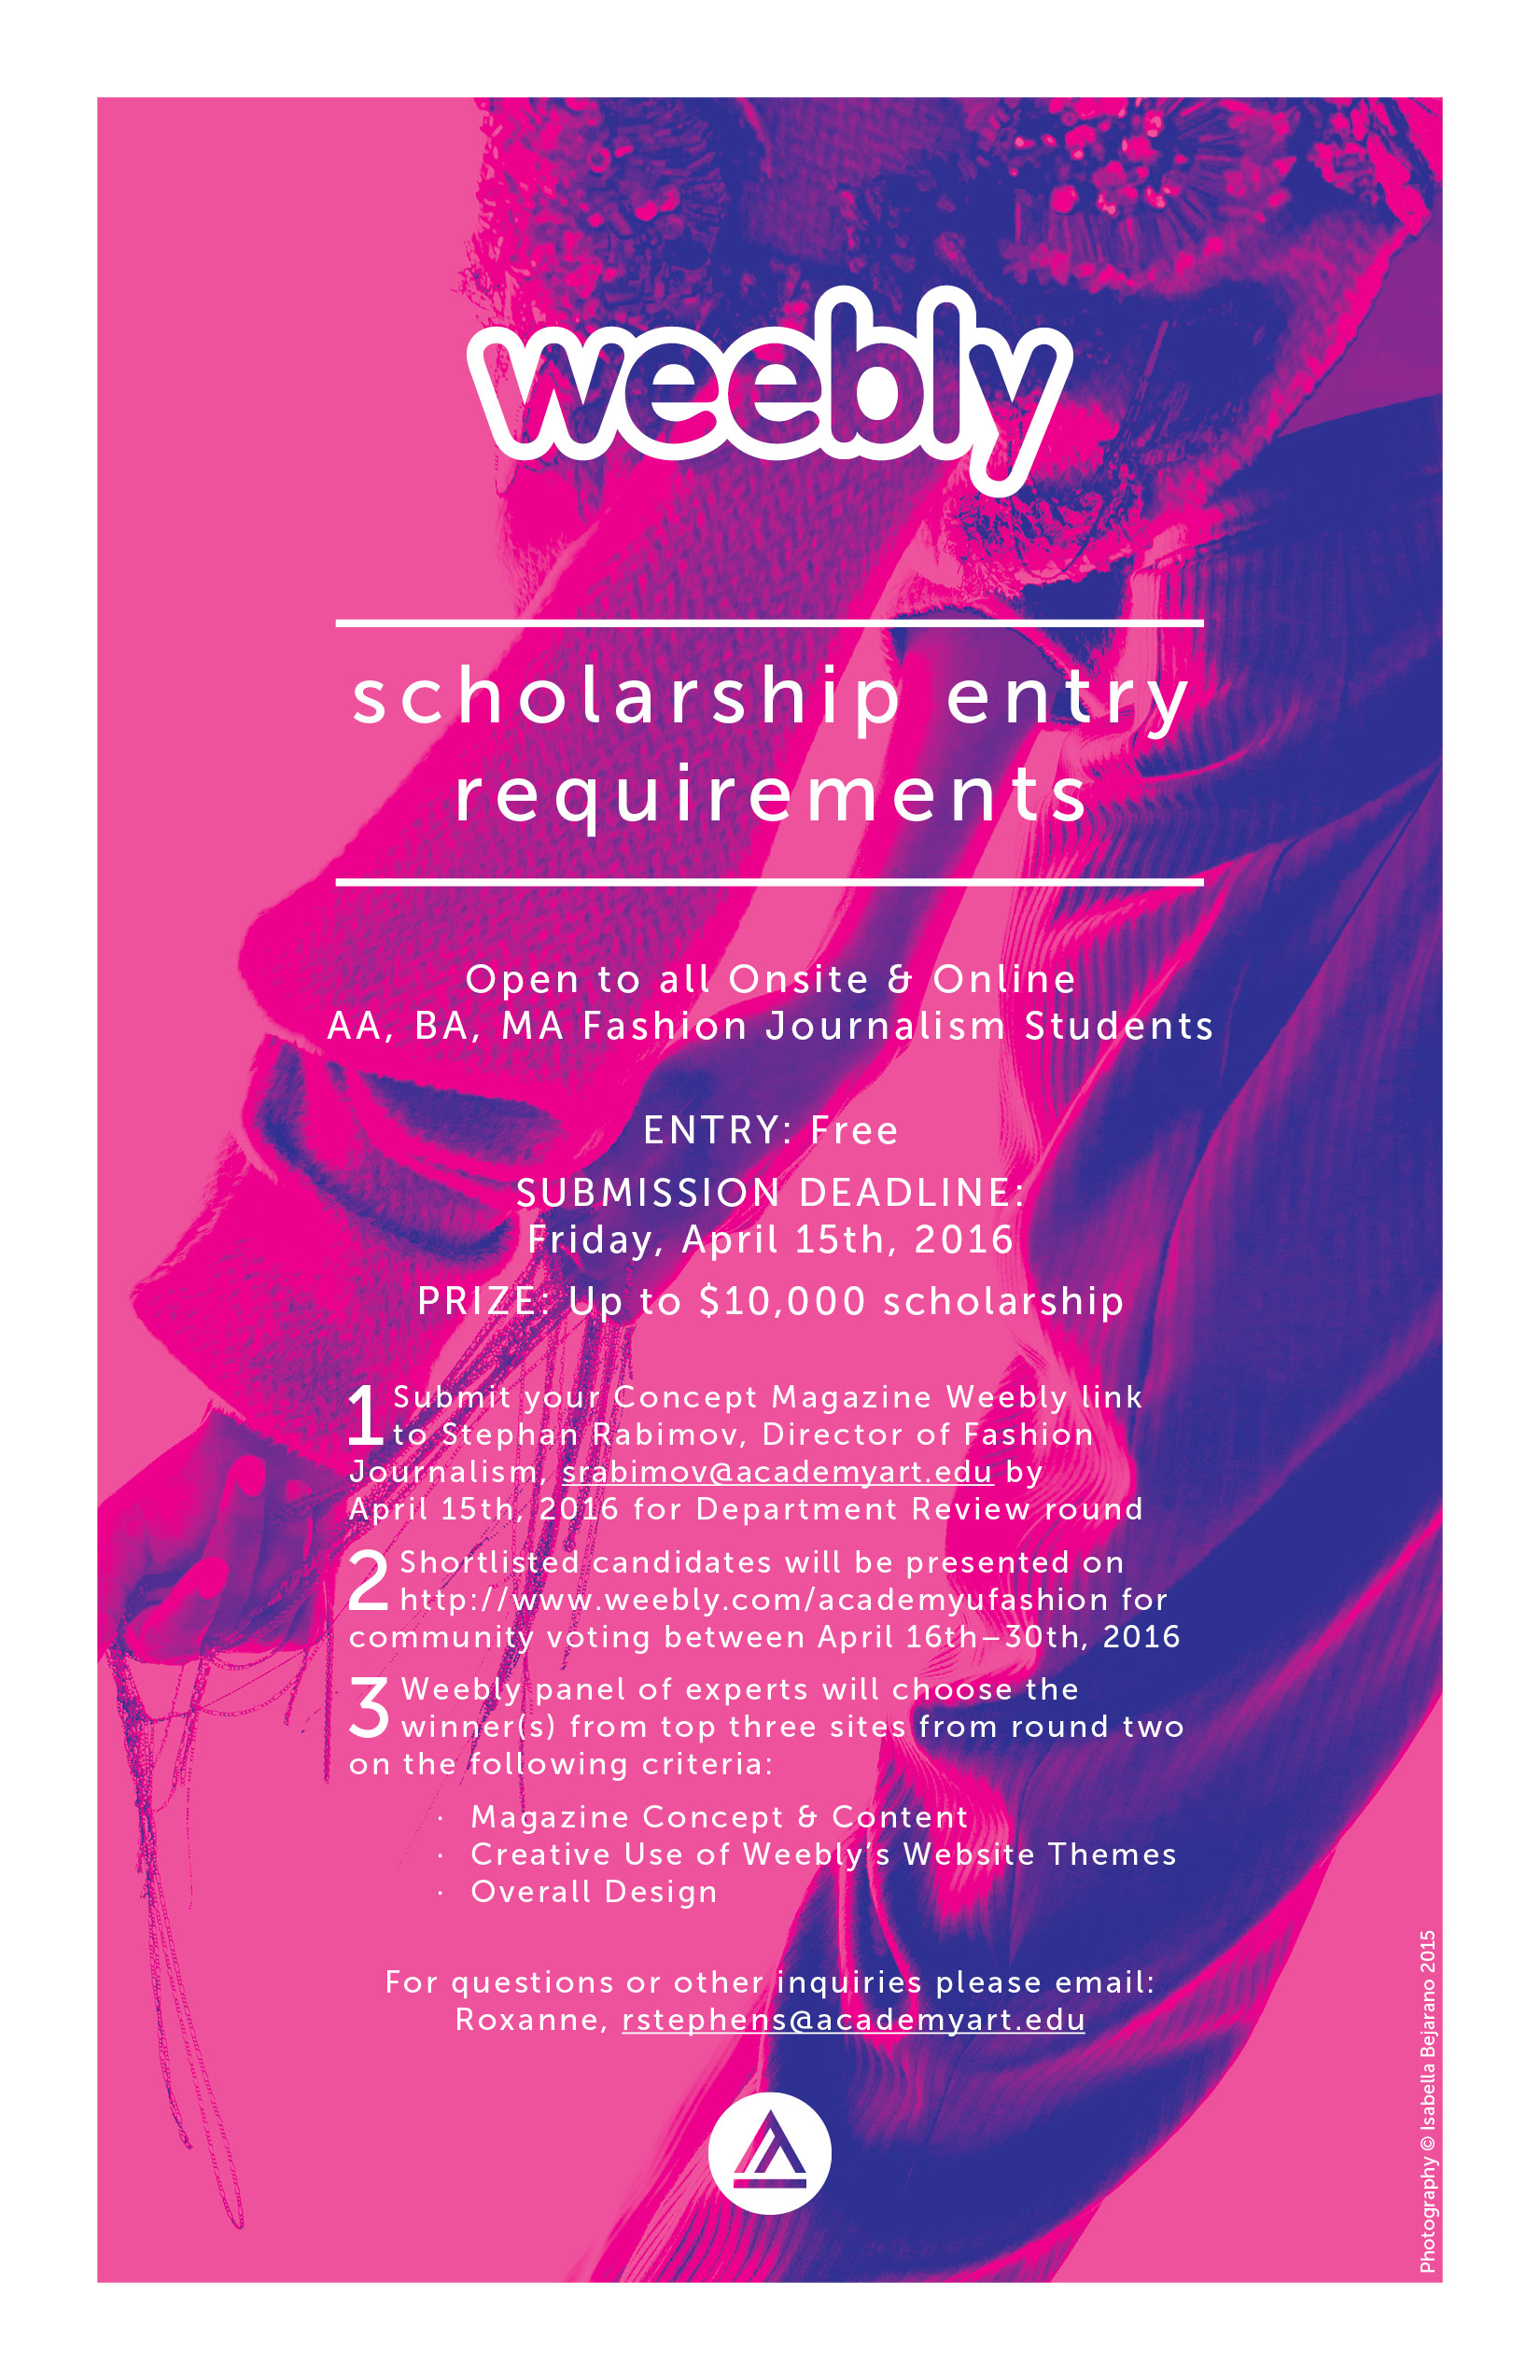 weebly_scholarship